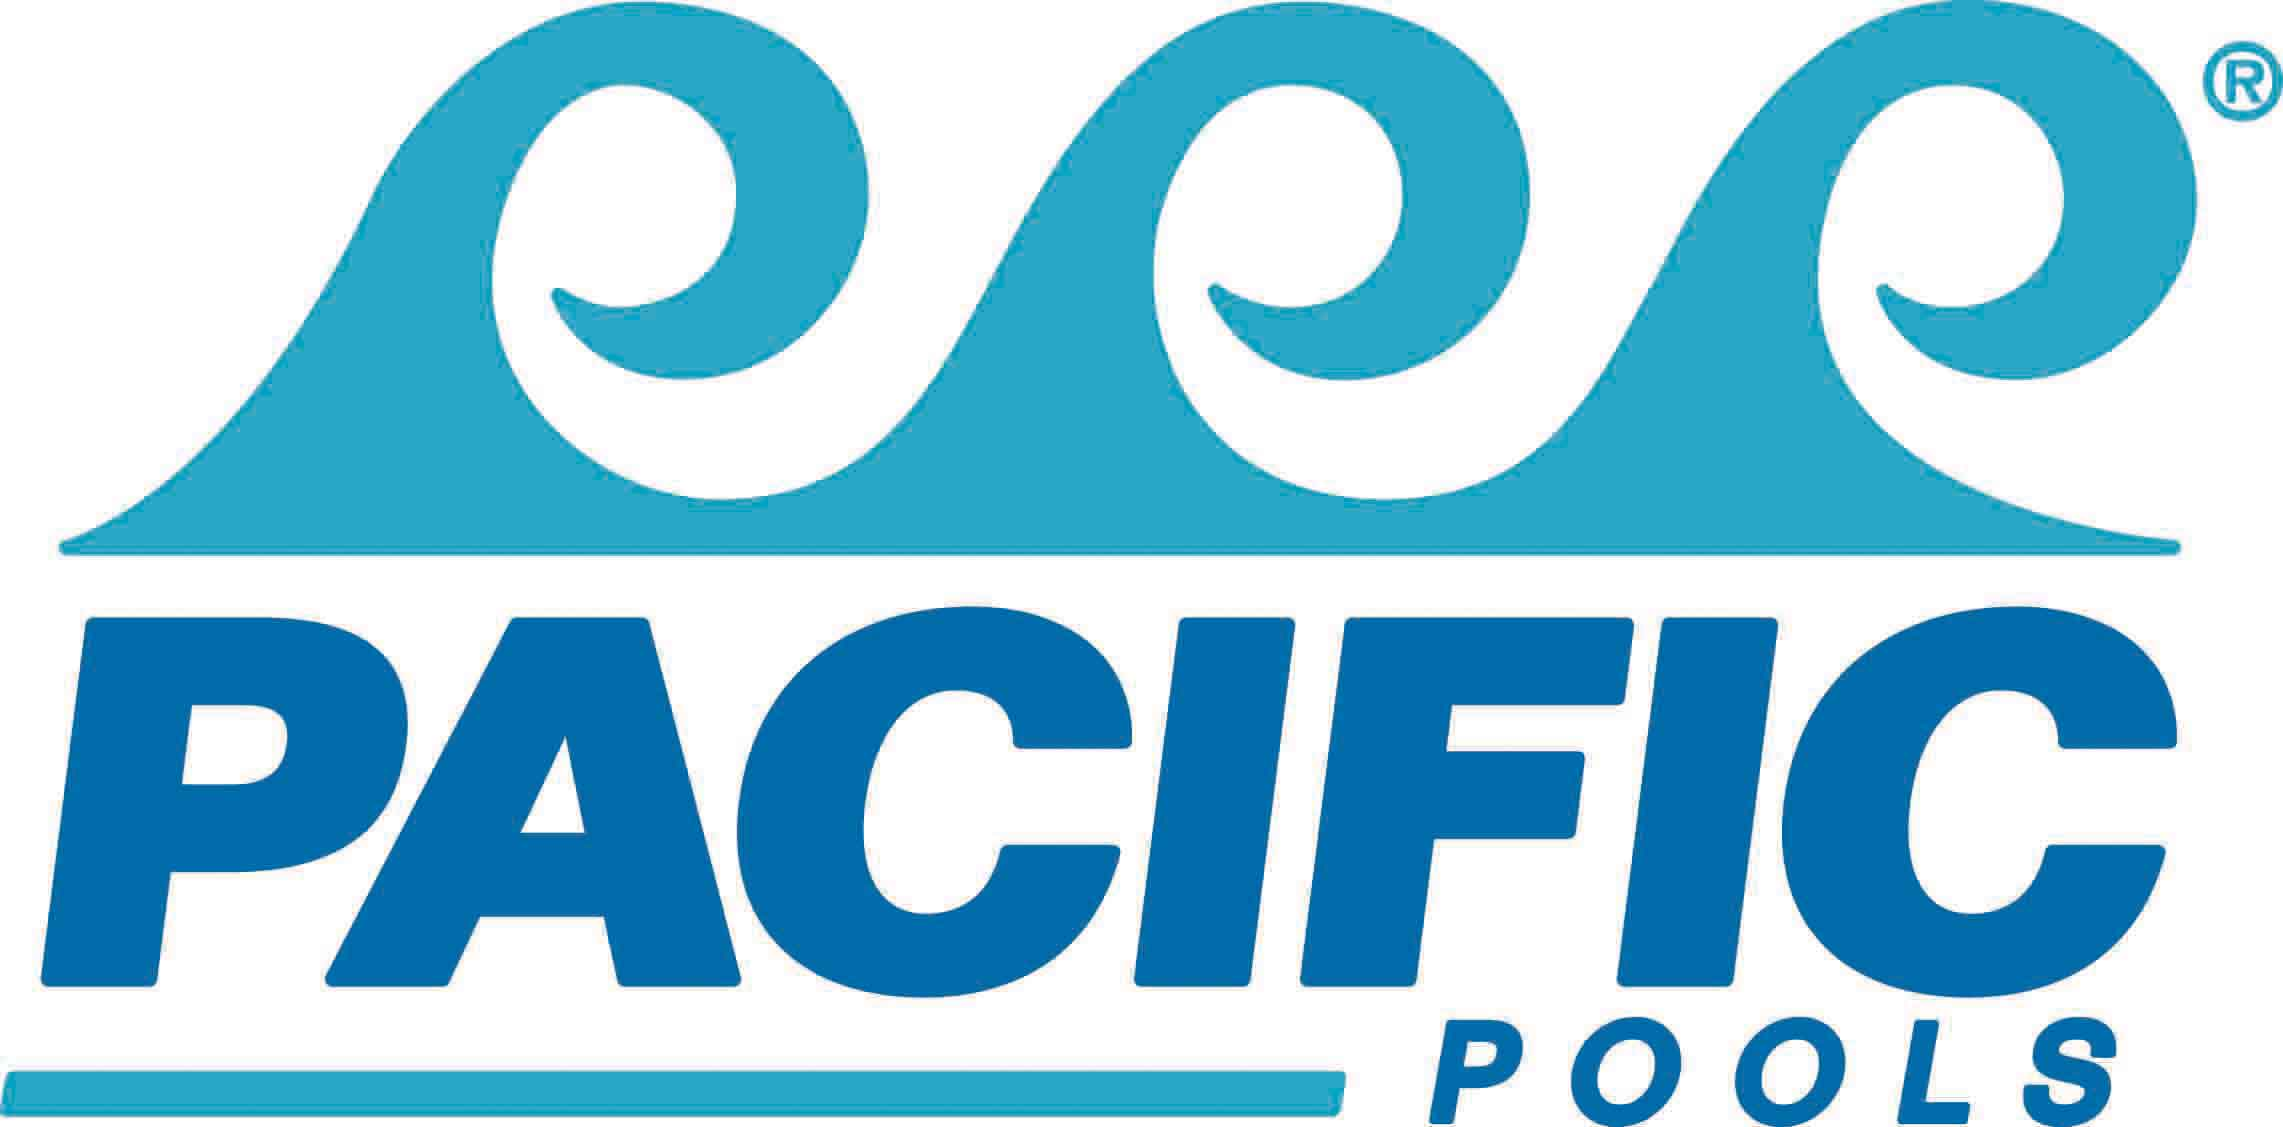 Czech pacific pools s.r.o.